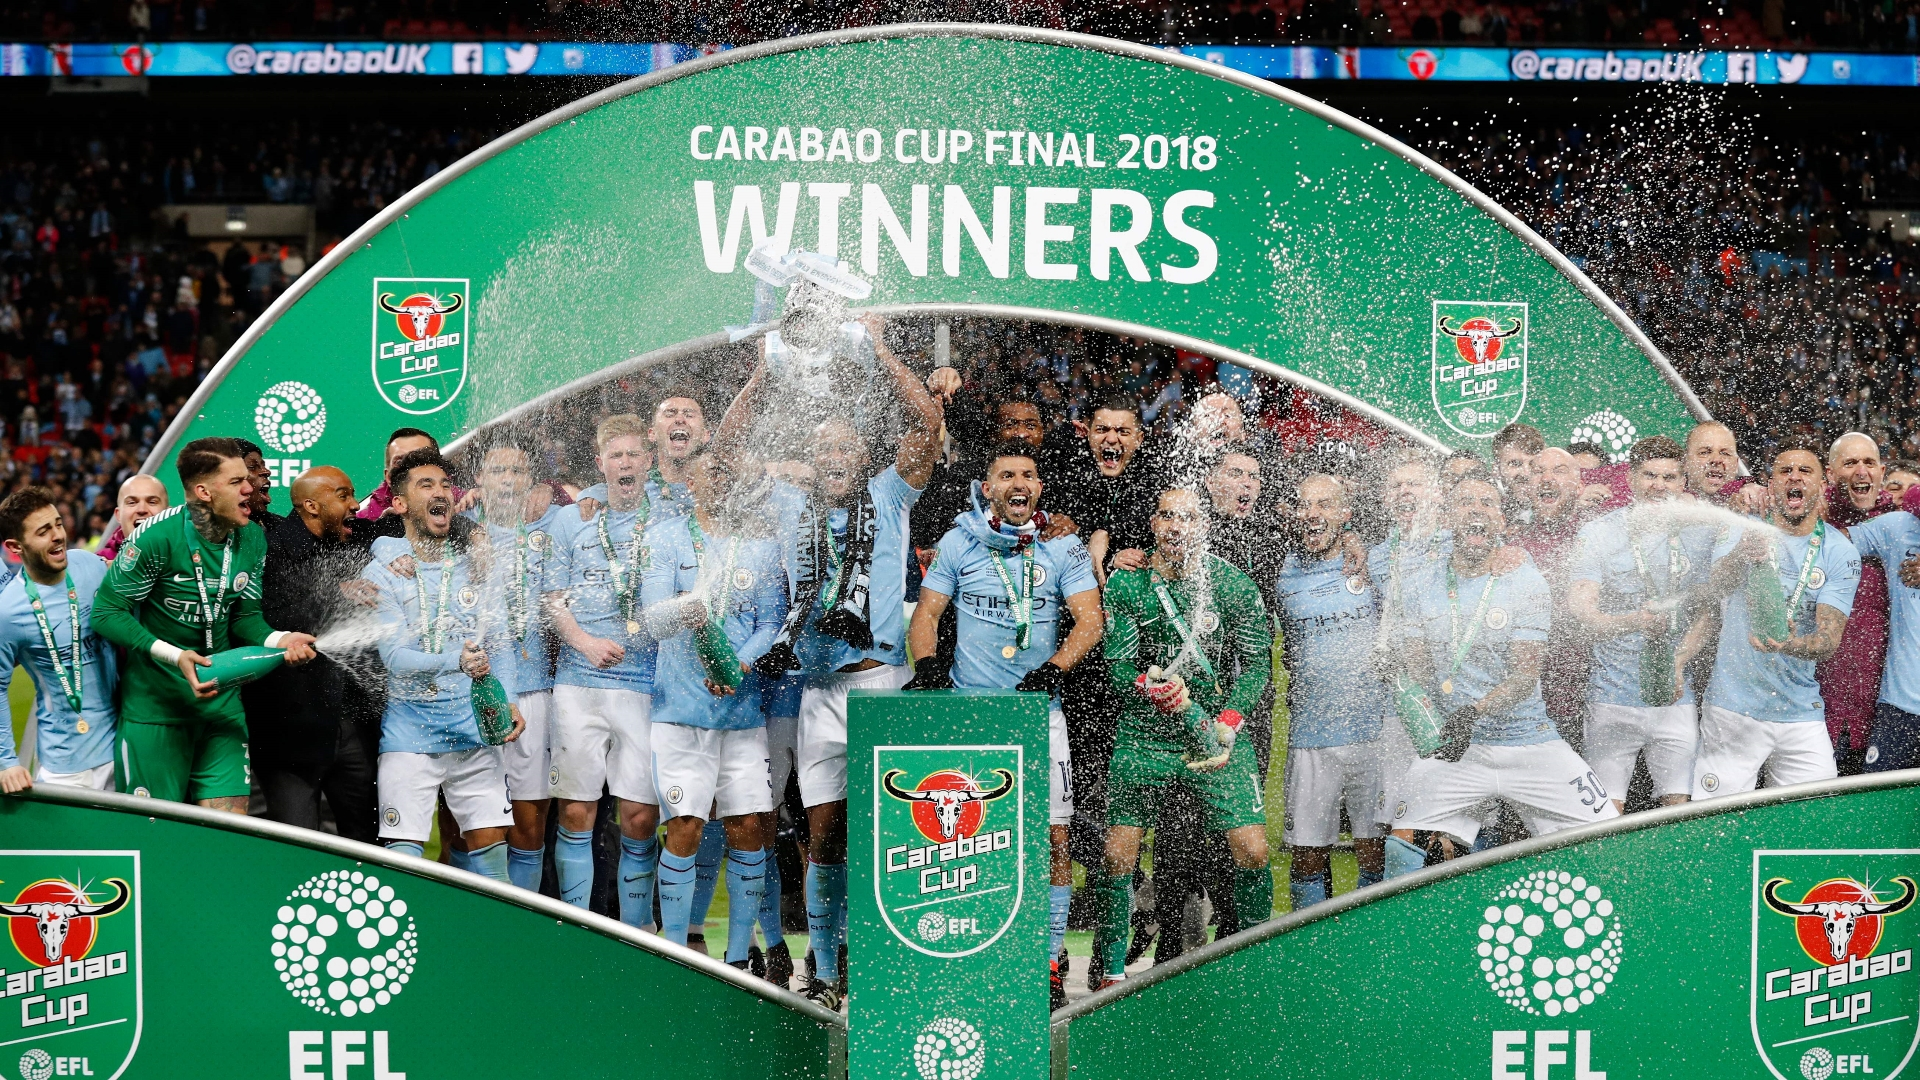 Manchester City lift Carabao Cup